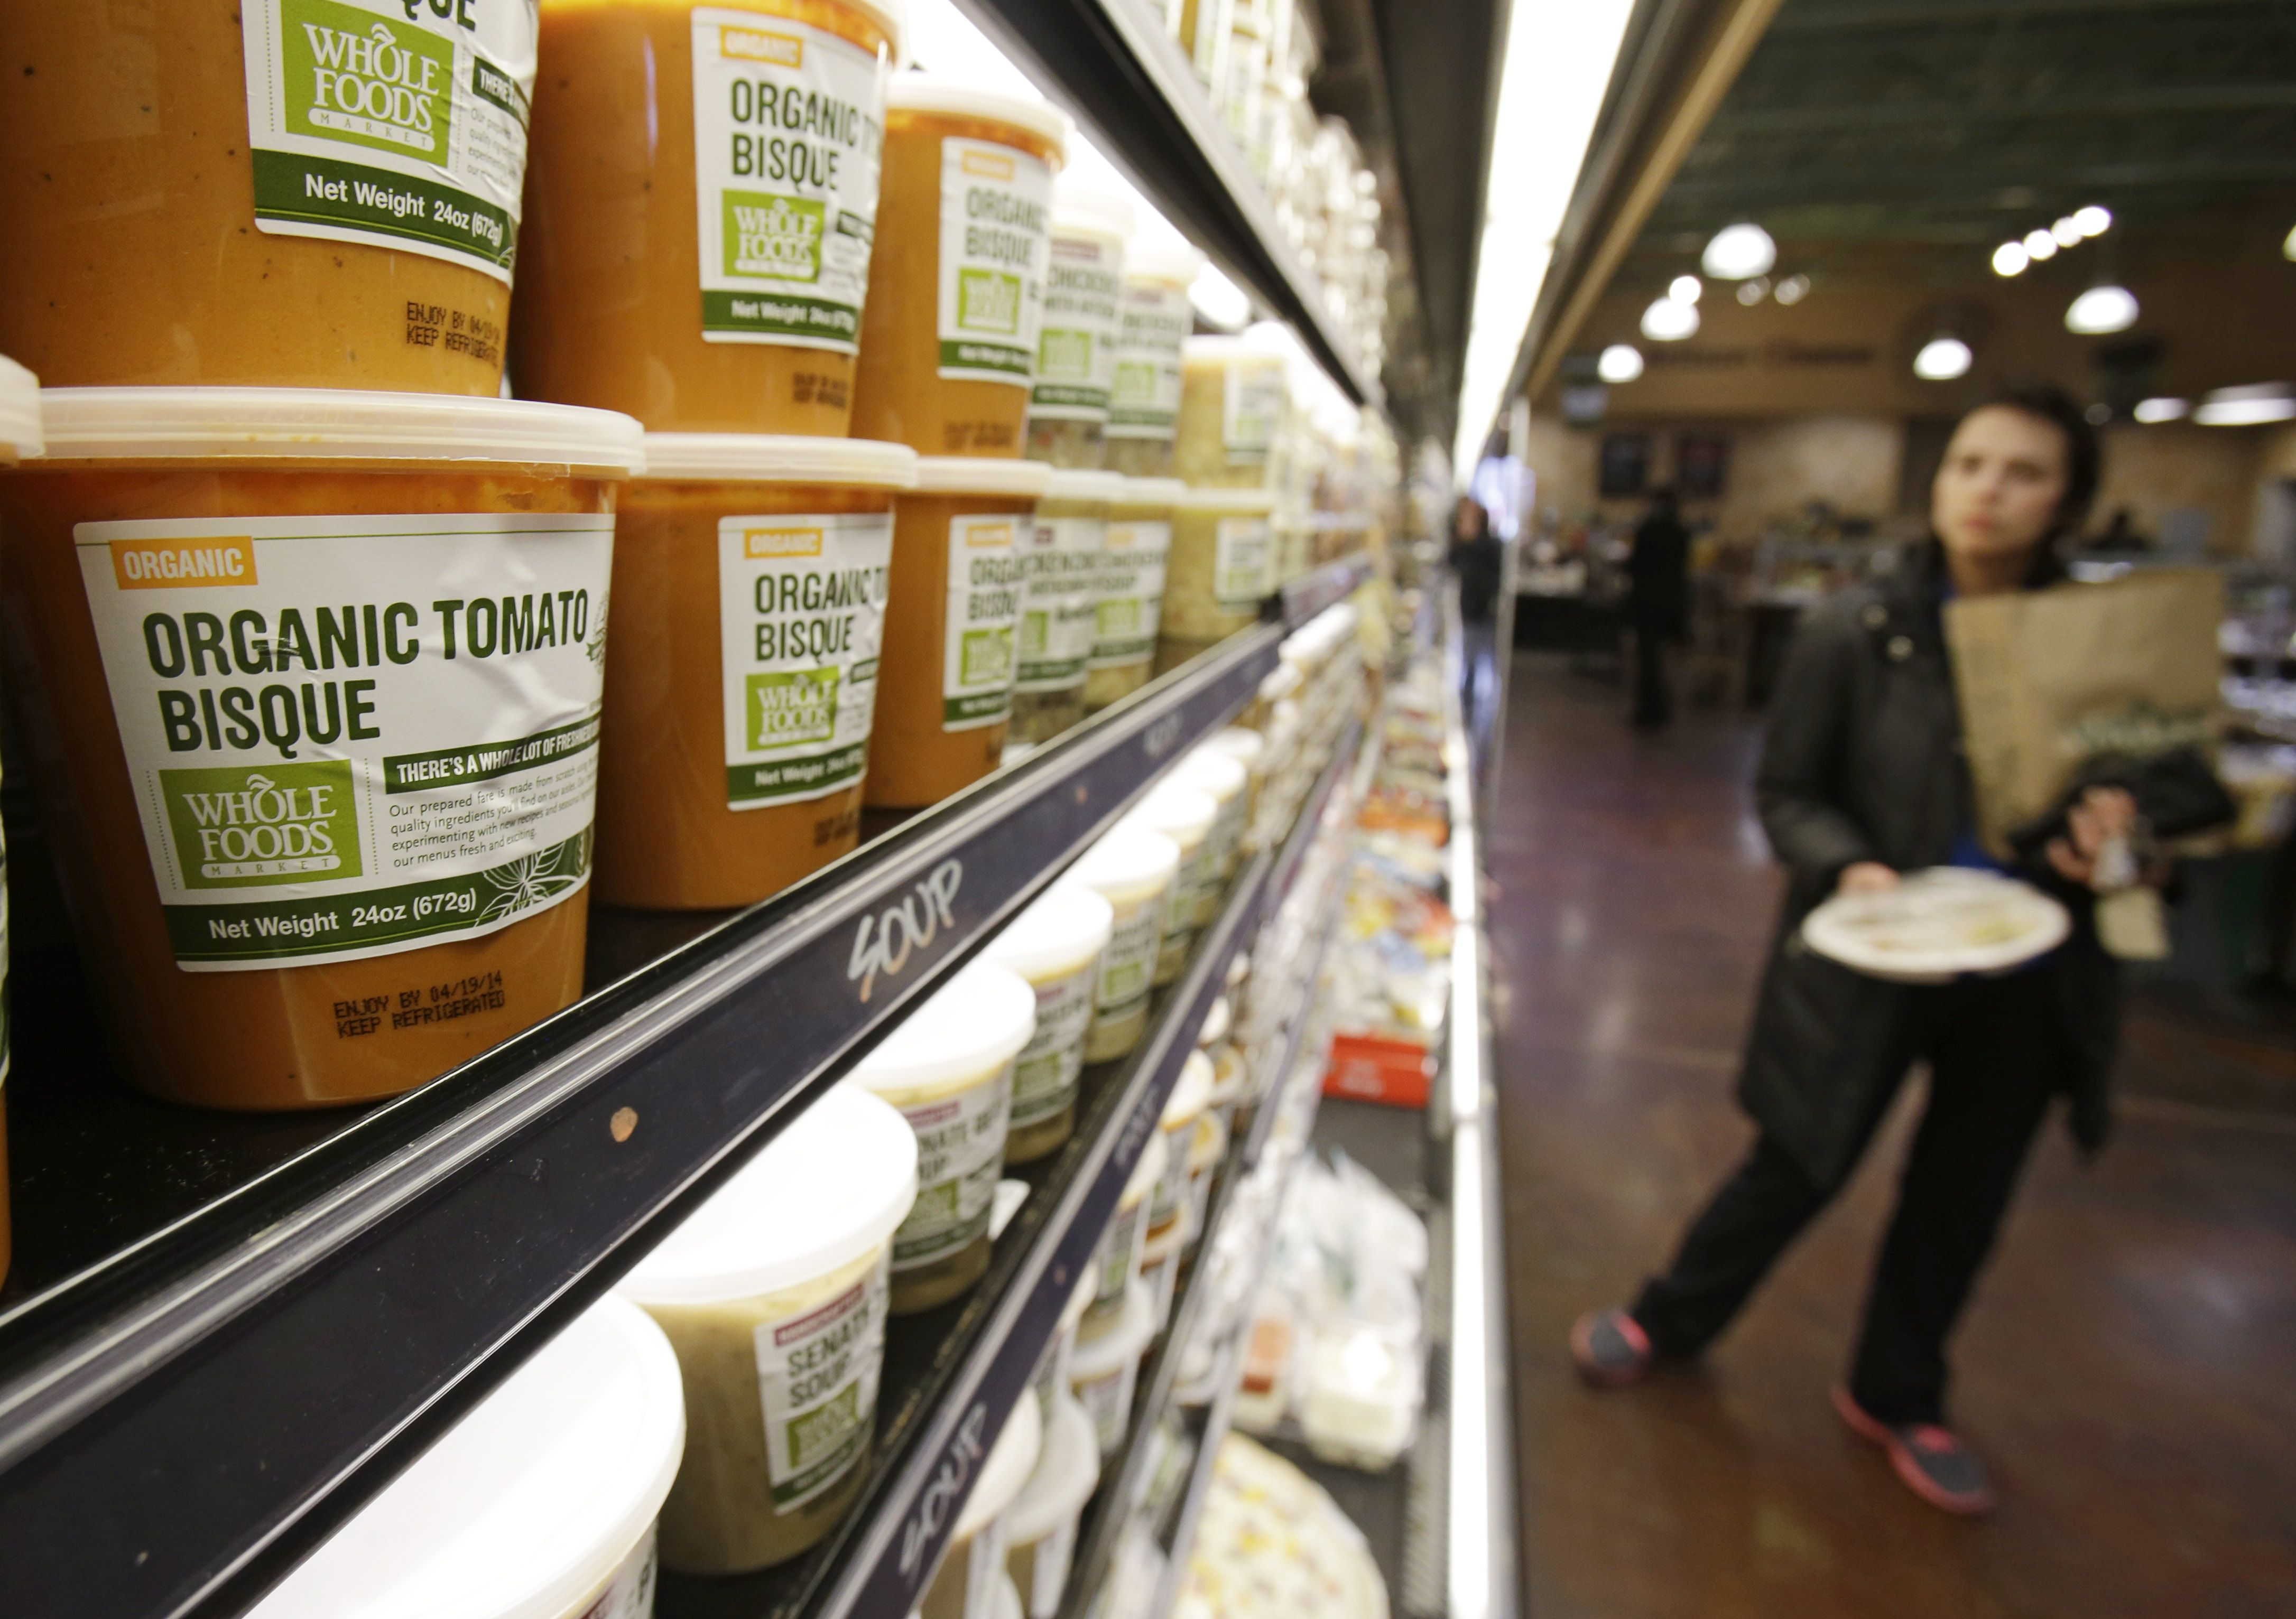 This Thursday, March 27, 2014 photo shows organic tomato bisque on the shelf at the Whole Foods Market in Woodmere Village, Ohio. Whole Foods Market Inc. reports quarterly financial results after the market closes on Wednesday, Feb. 11, 2015. (AP Photo/Tony Dejak)